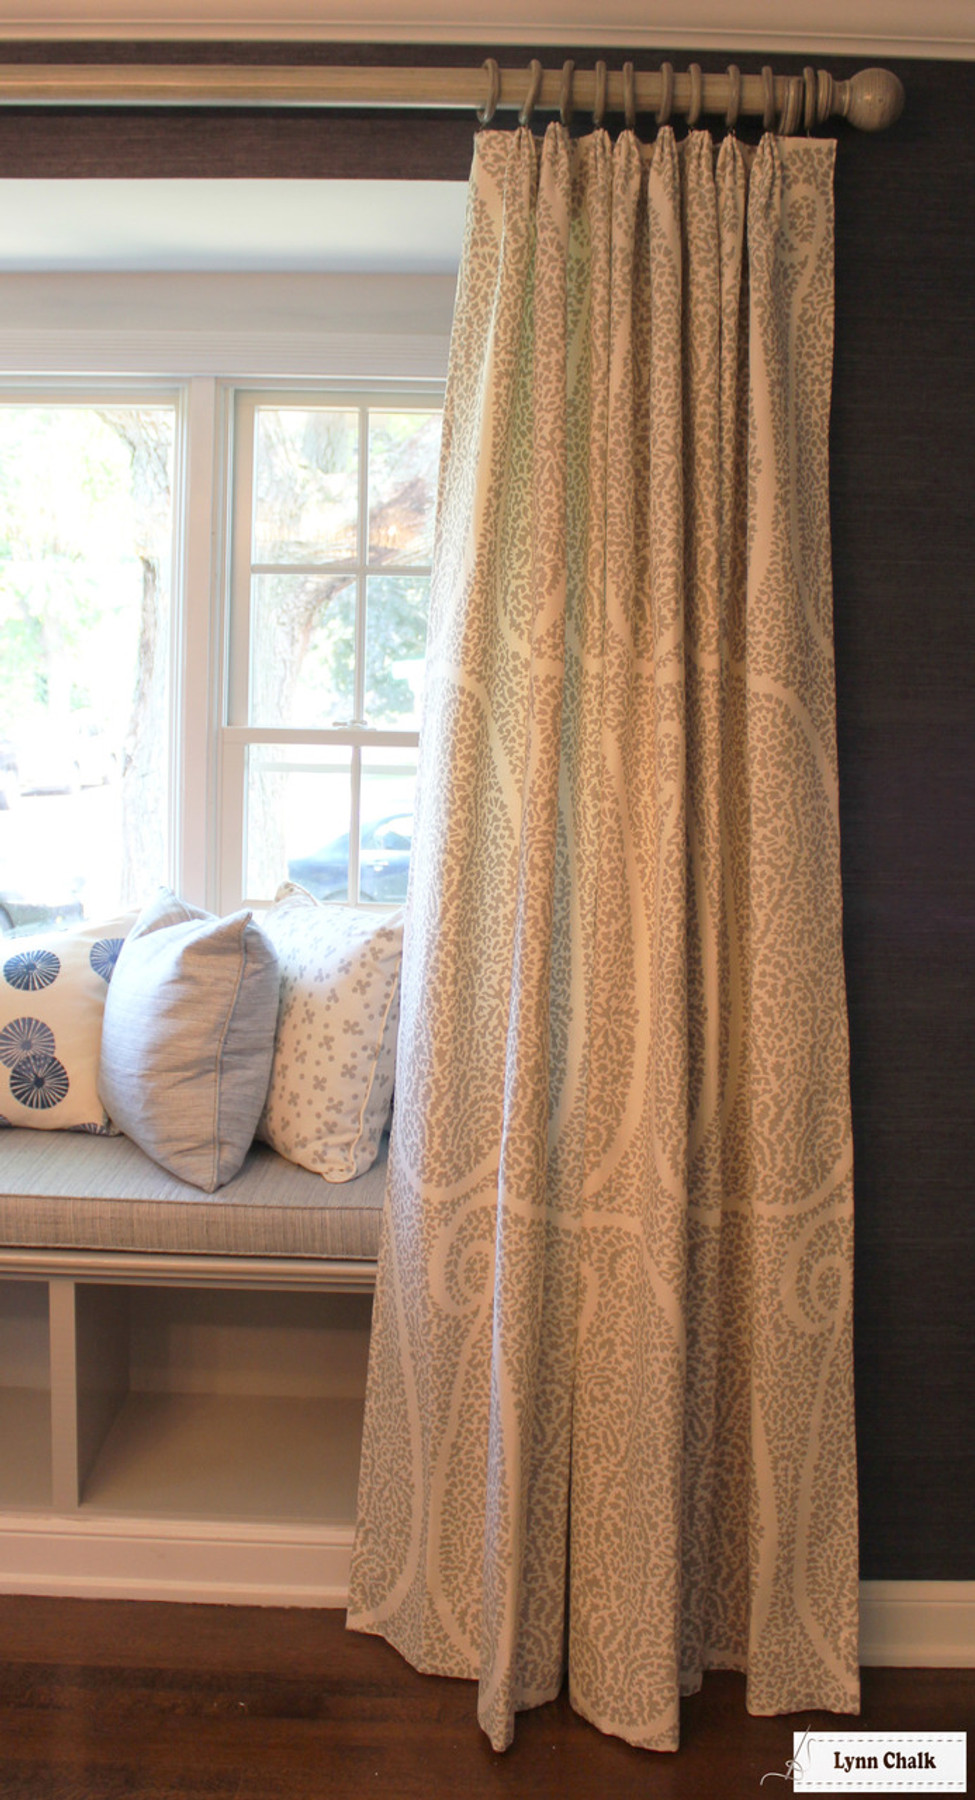 window seat curtains window seating window seat cushions and pillows groundworks kasa in blue christopher farr pollen smoke blue